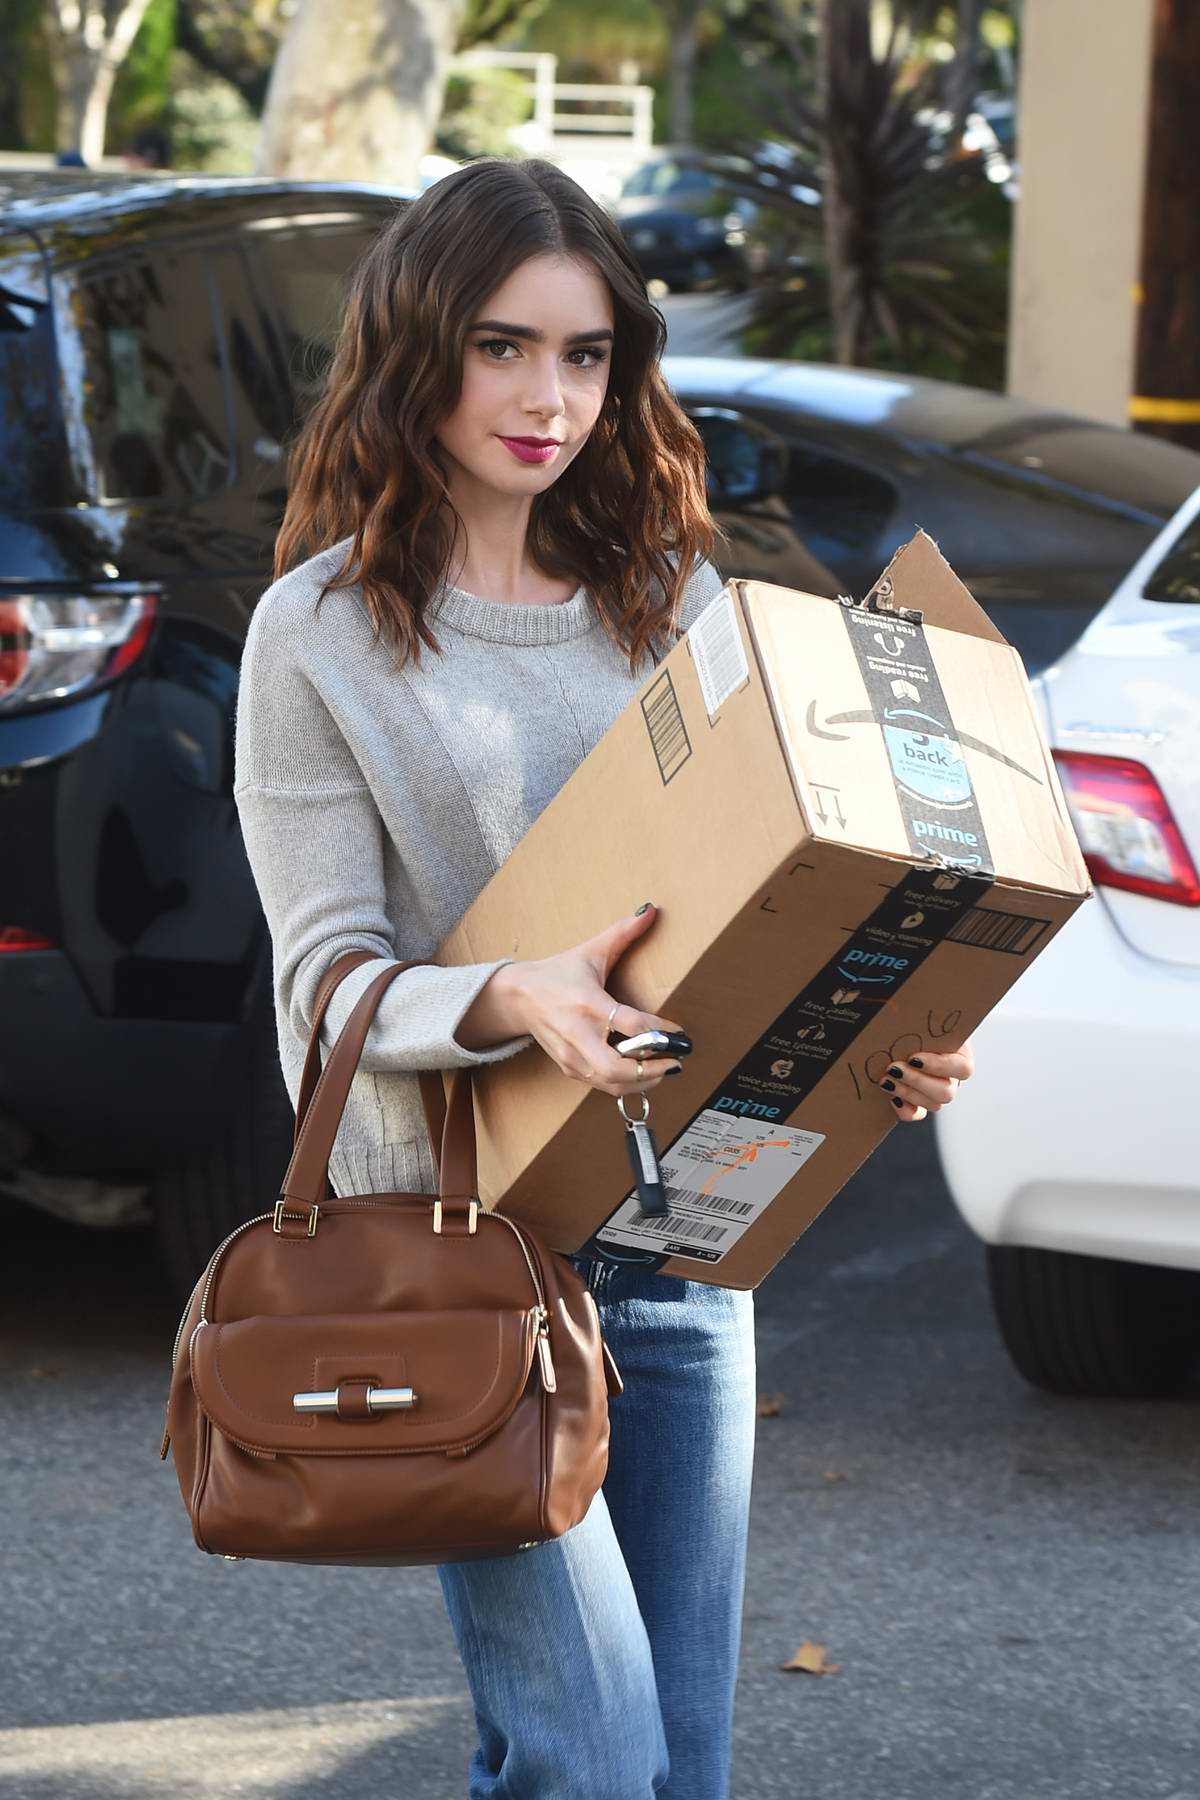 Lily Collins drops off a package at the FedEx office print & ship center in Beverly Hills, Los Angeles